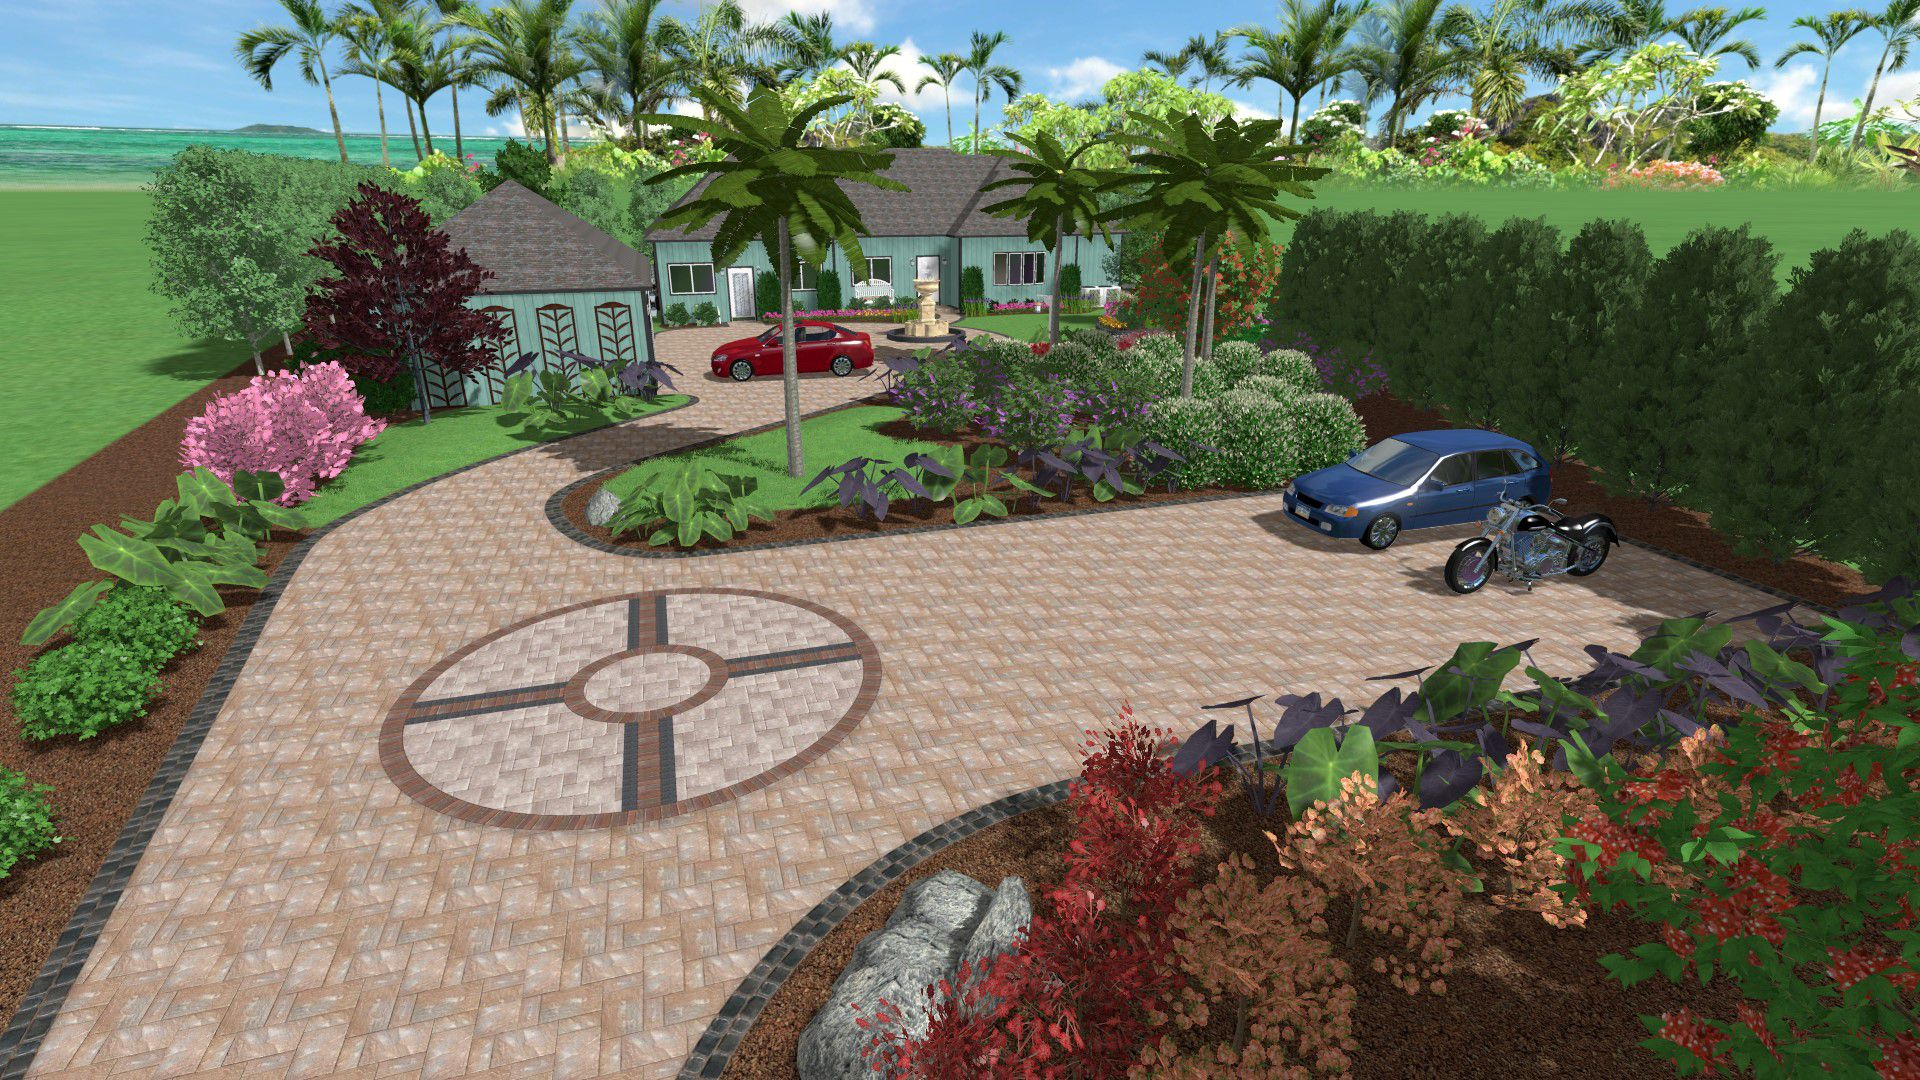 Realtime Landscaping Architect 2020 - Download